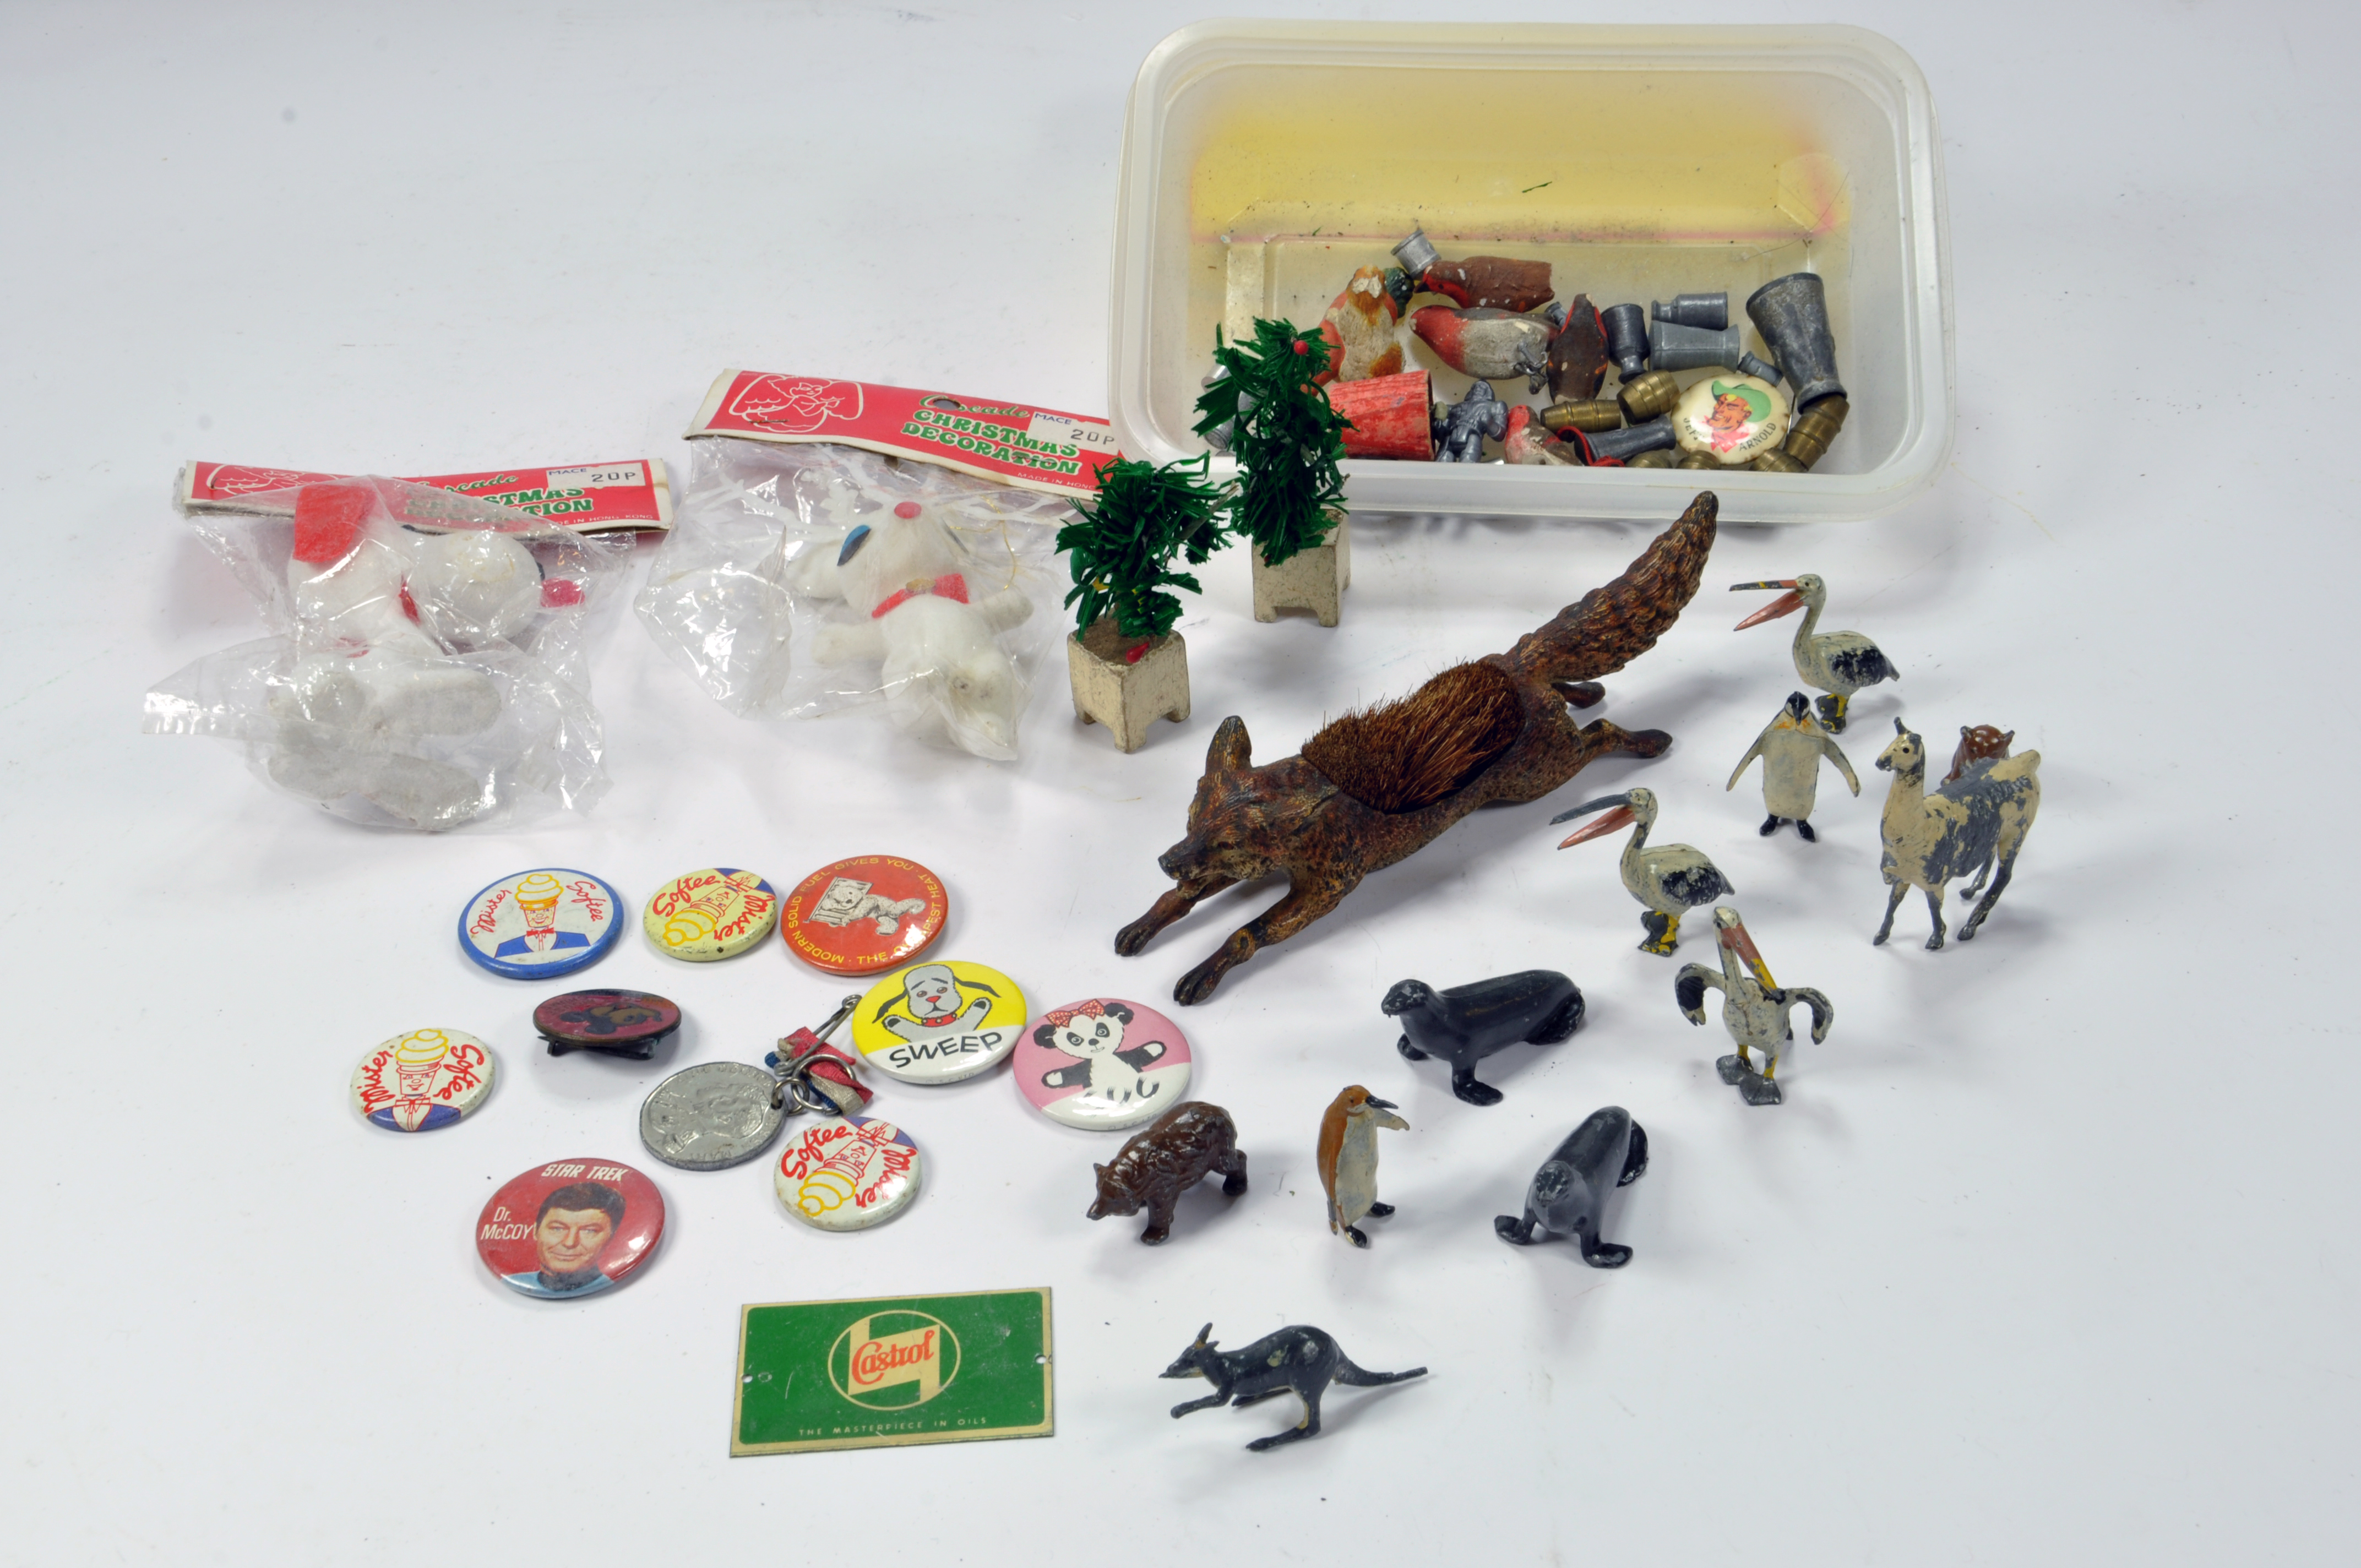 Lot 654 - Interesting Lead Metal Figure group comprising various animal issues and other novelty items.